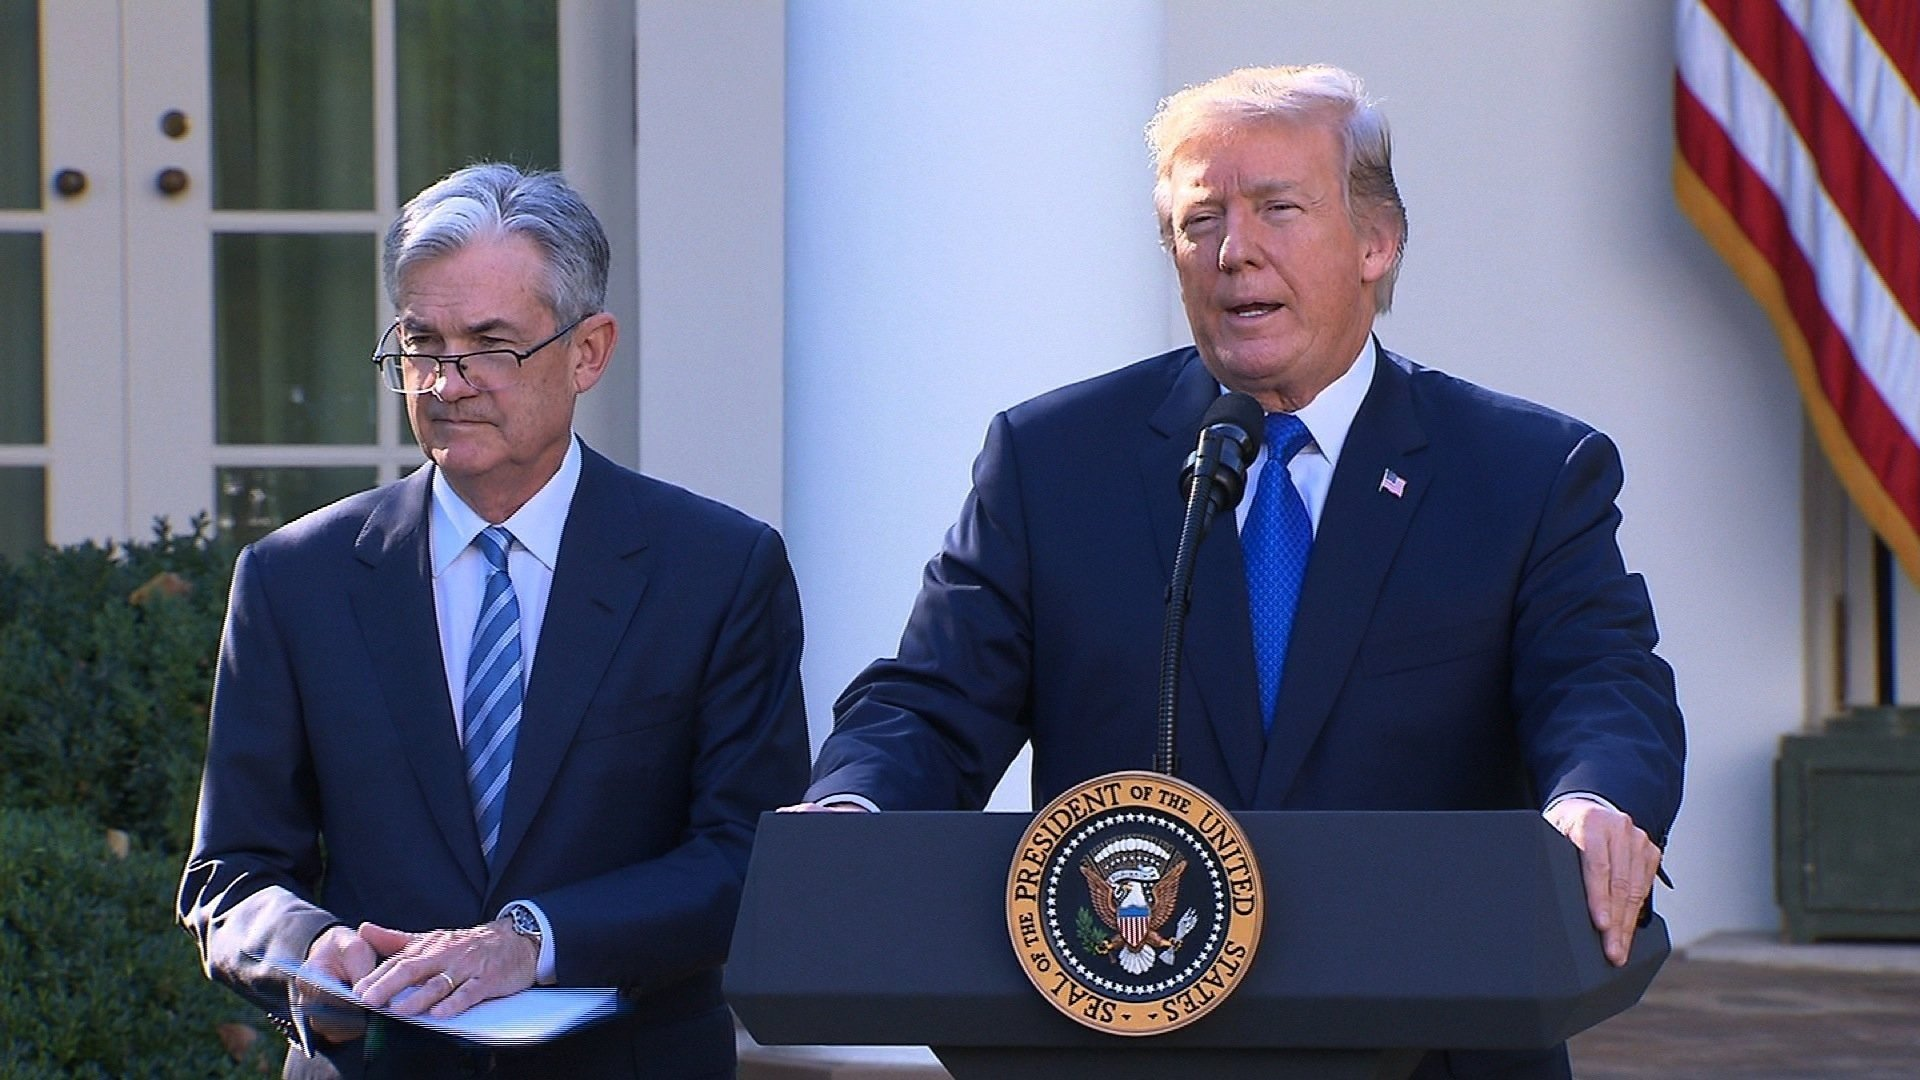 Jerome Powell sworn in as 16th Fed chairman